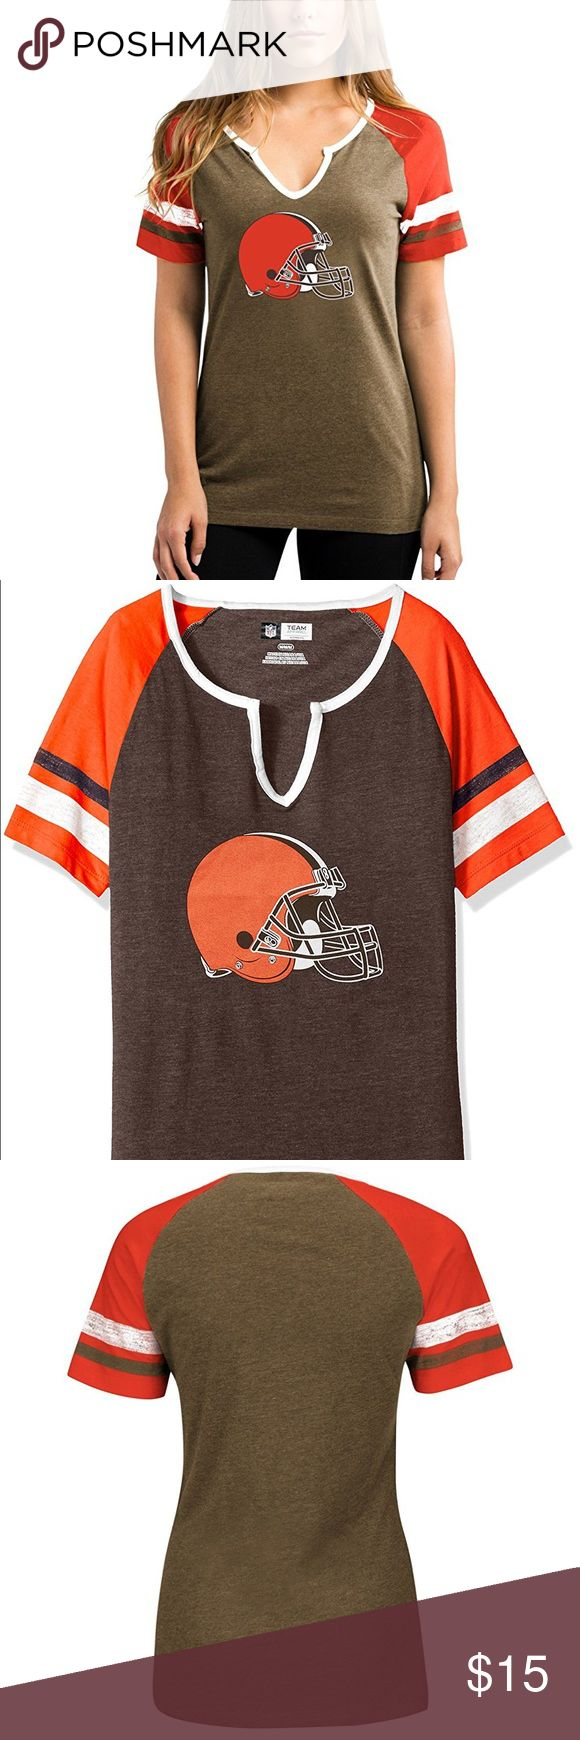 Cleveland Browns Sweet Game Short Sleeve Raglan Brand New Officially Licensed with tags. This cute Sweet Game Short Sleeve Raglan top has contrast stripped sleeves, notched V-neck with graphics on the front. (M)726658954488 (L)726656209481 Team Apparel Tops Tees - Short Sleeve